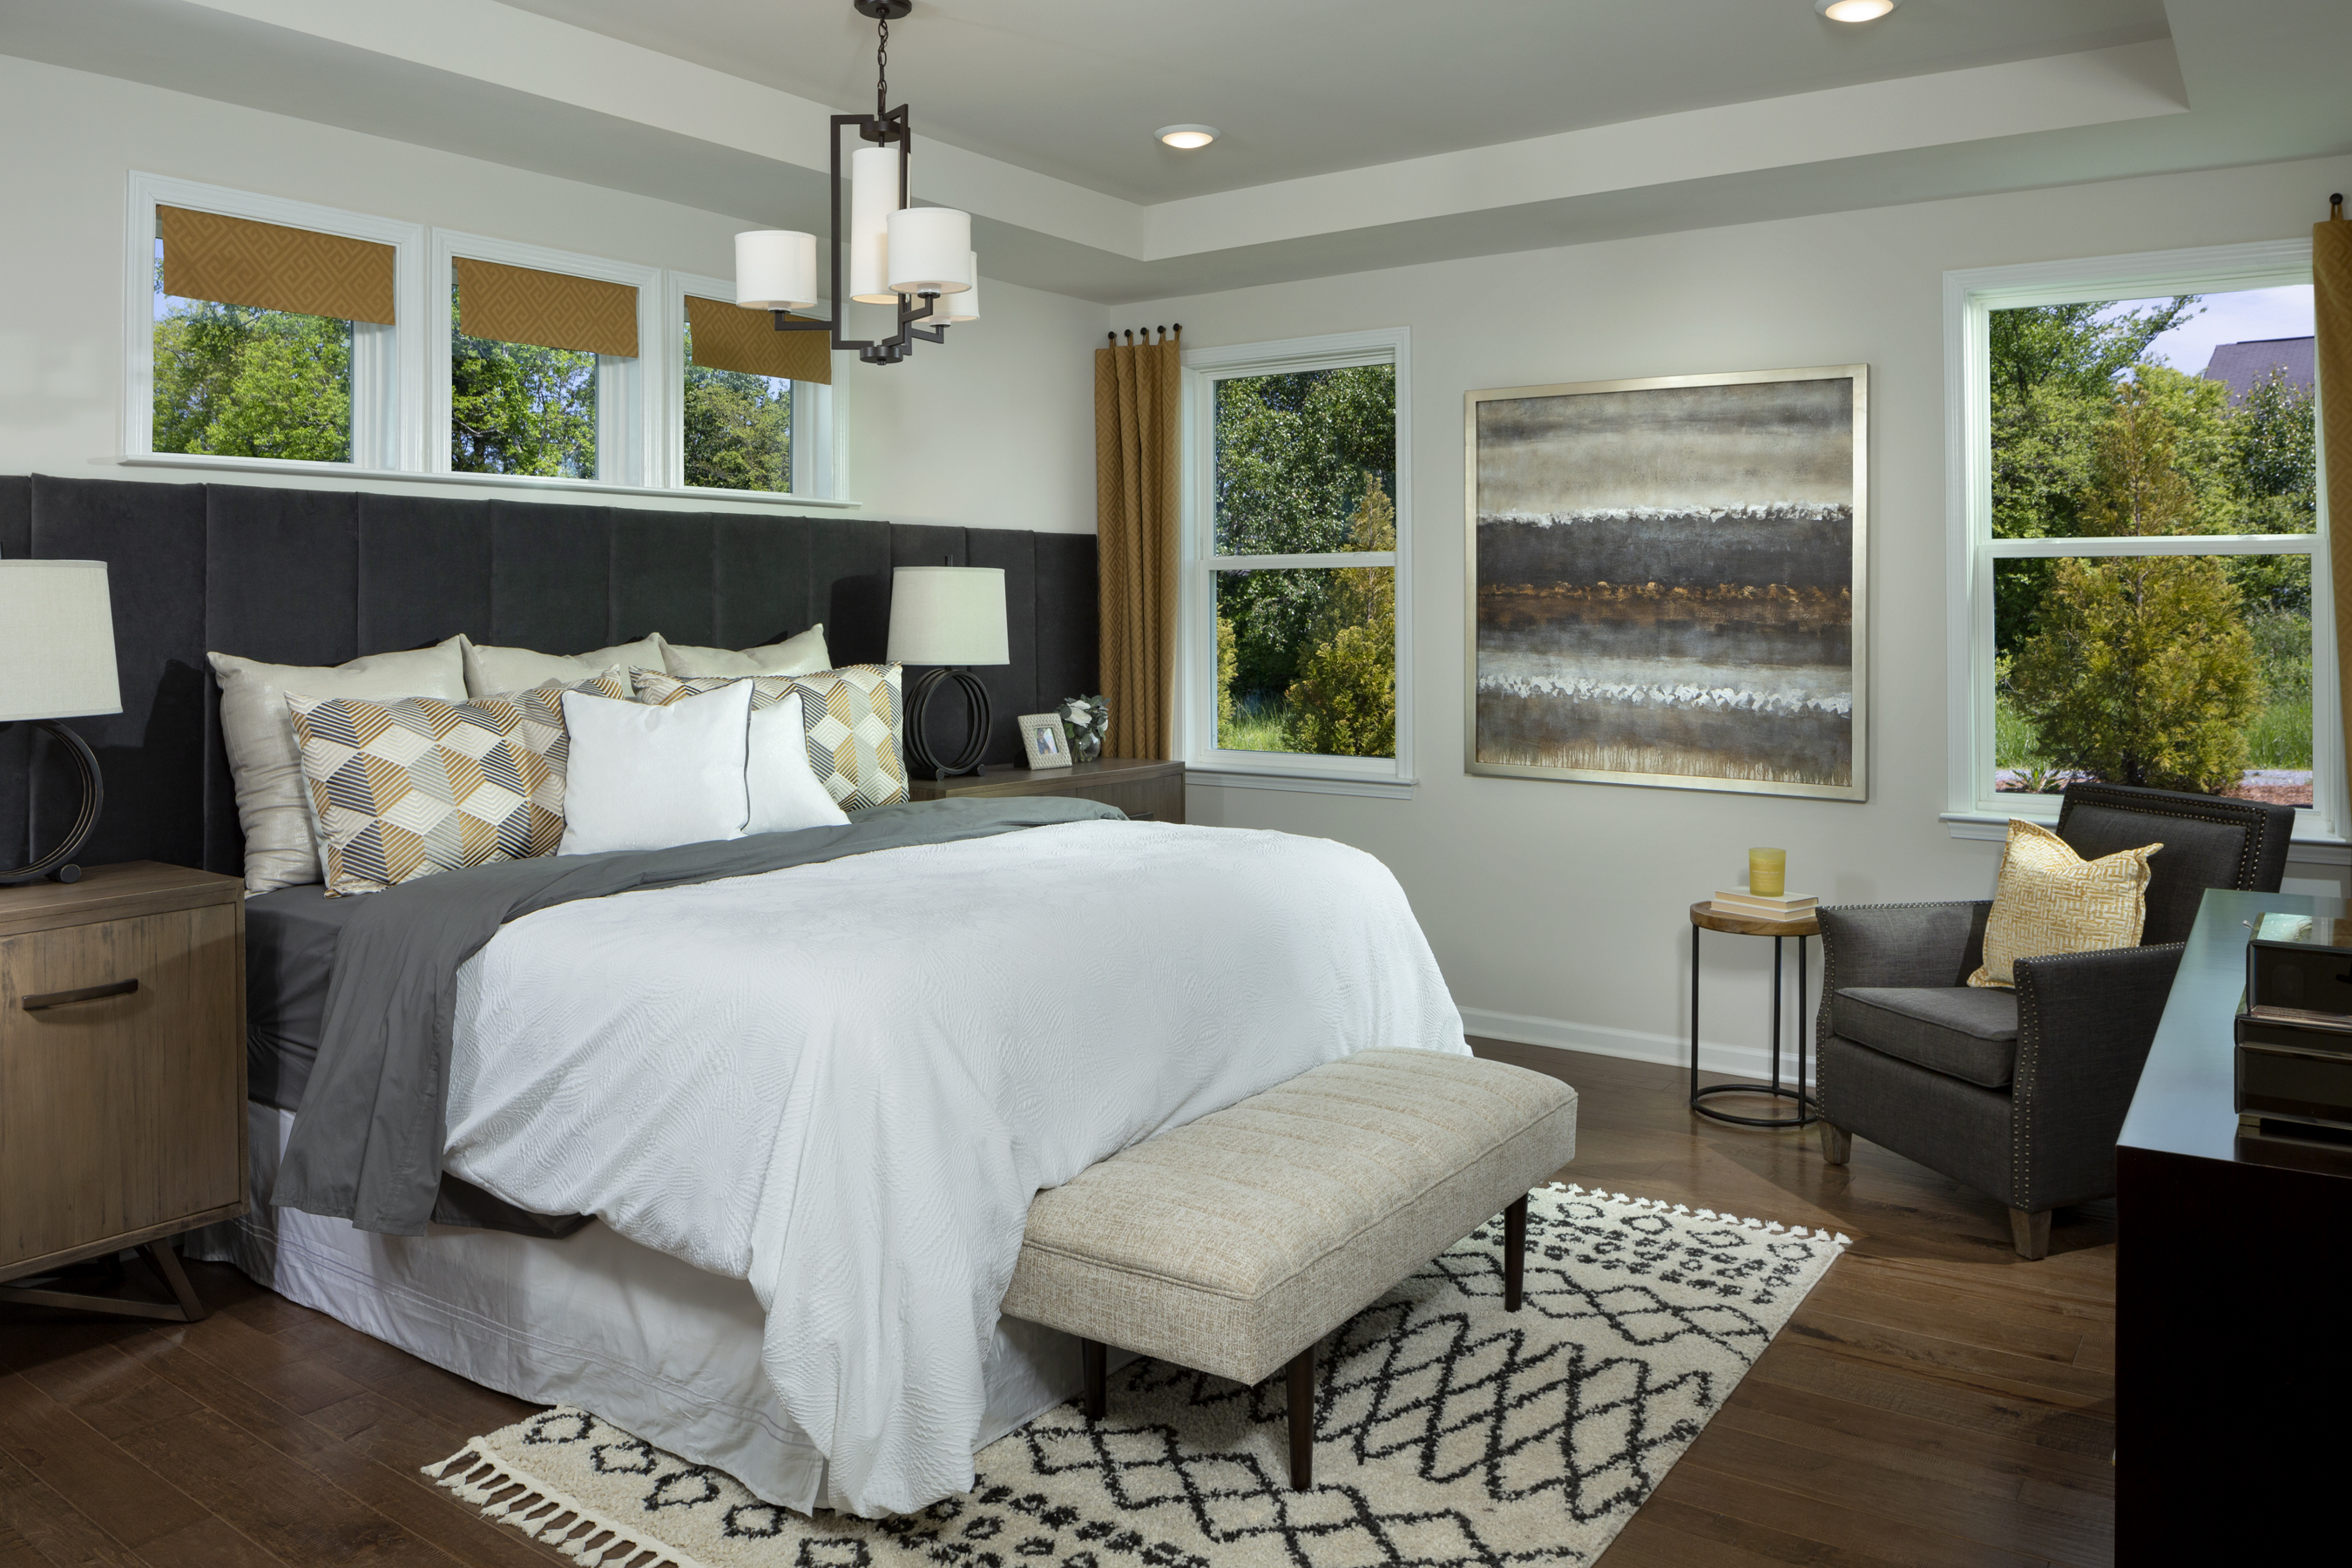 web-res-edgefield-master-bed-by-rob-harris_51144252572_o.jpg